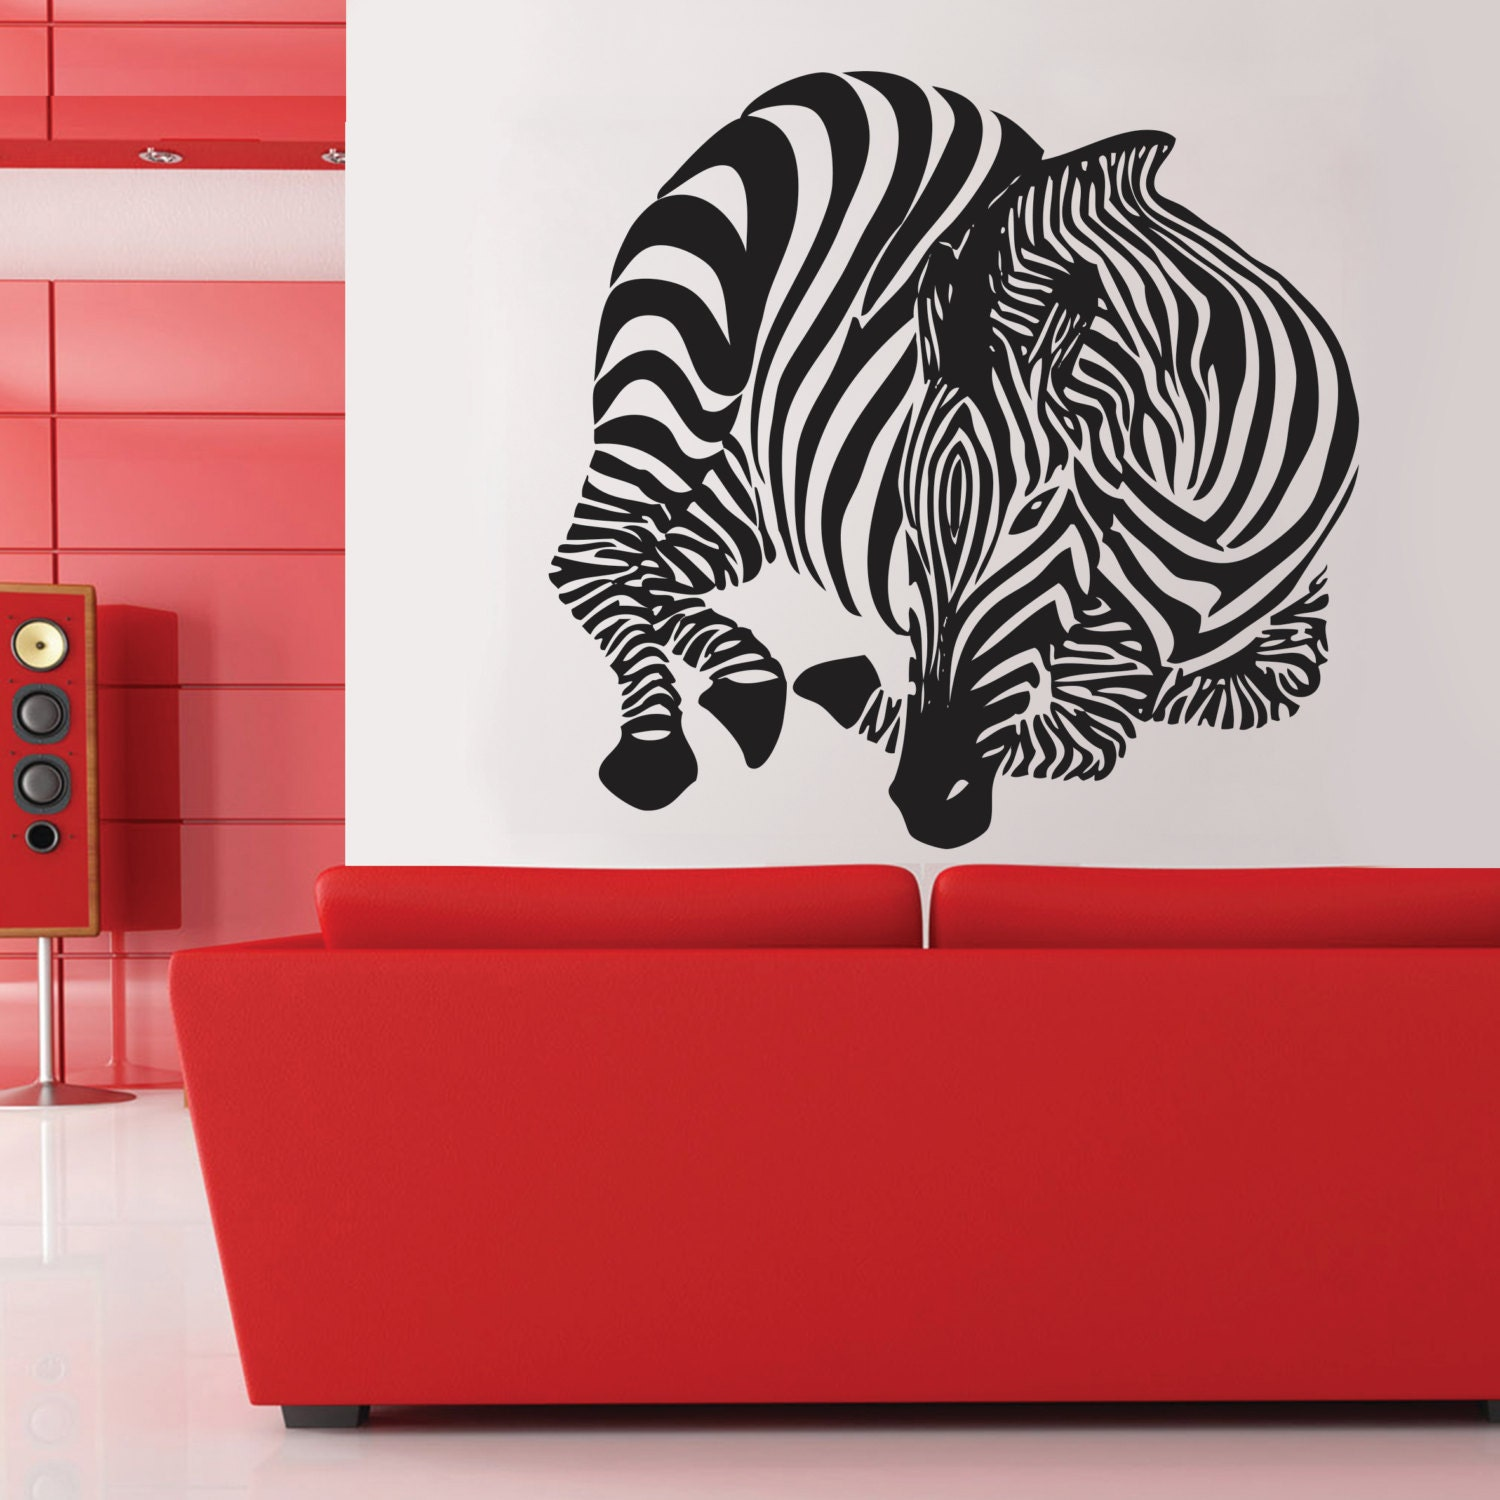 Zebra wall decal home d cor wall decal large zebra vinyl wall for Zebra home decorations